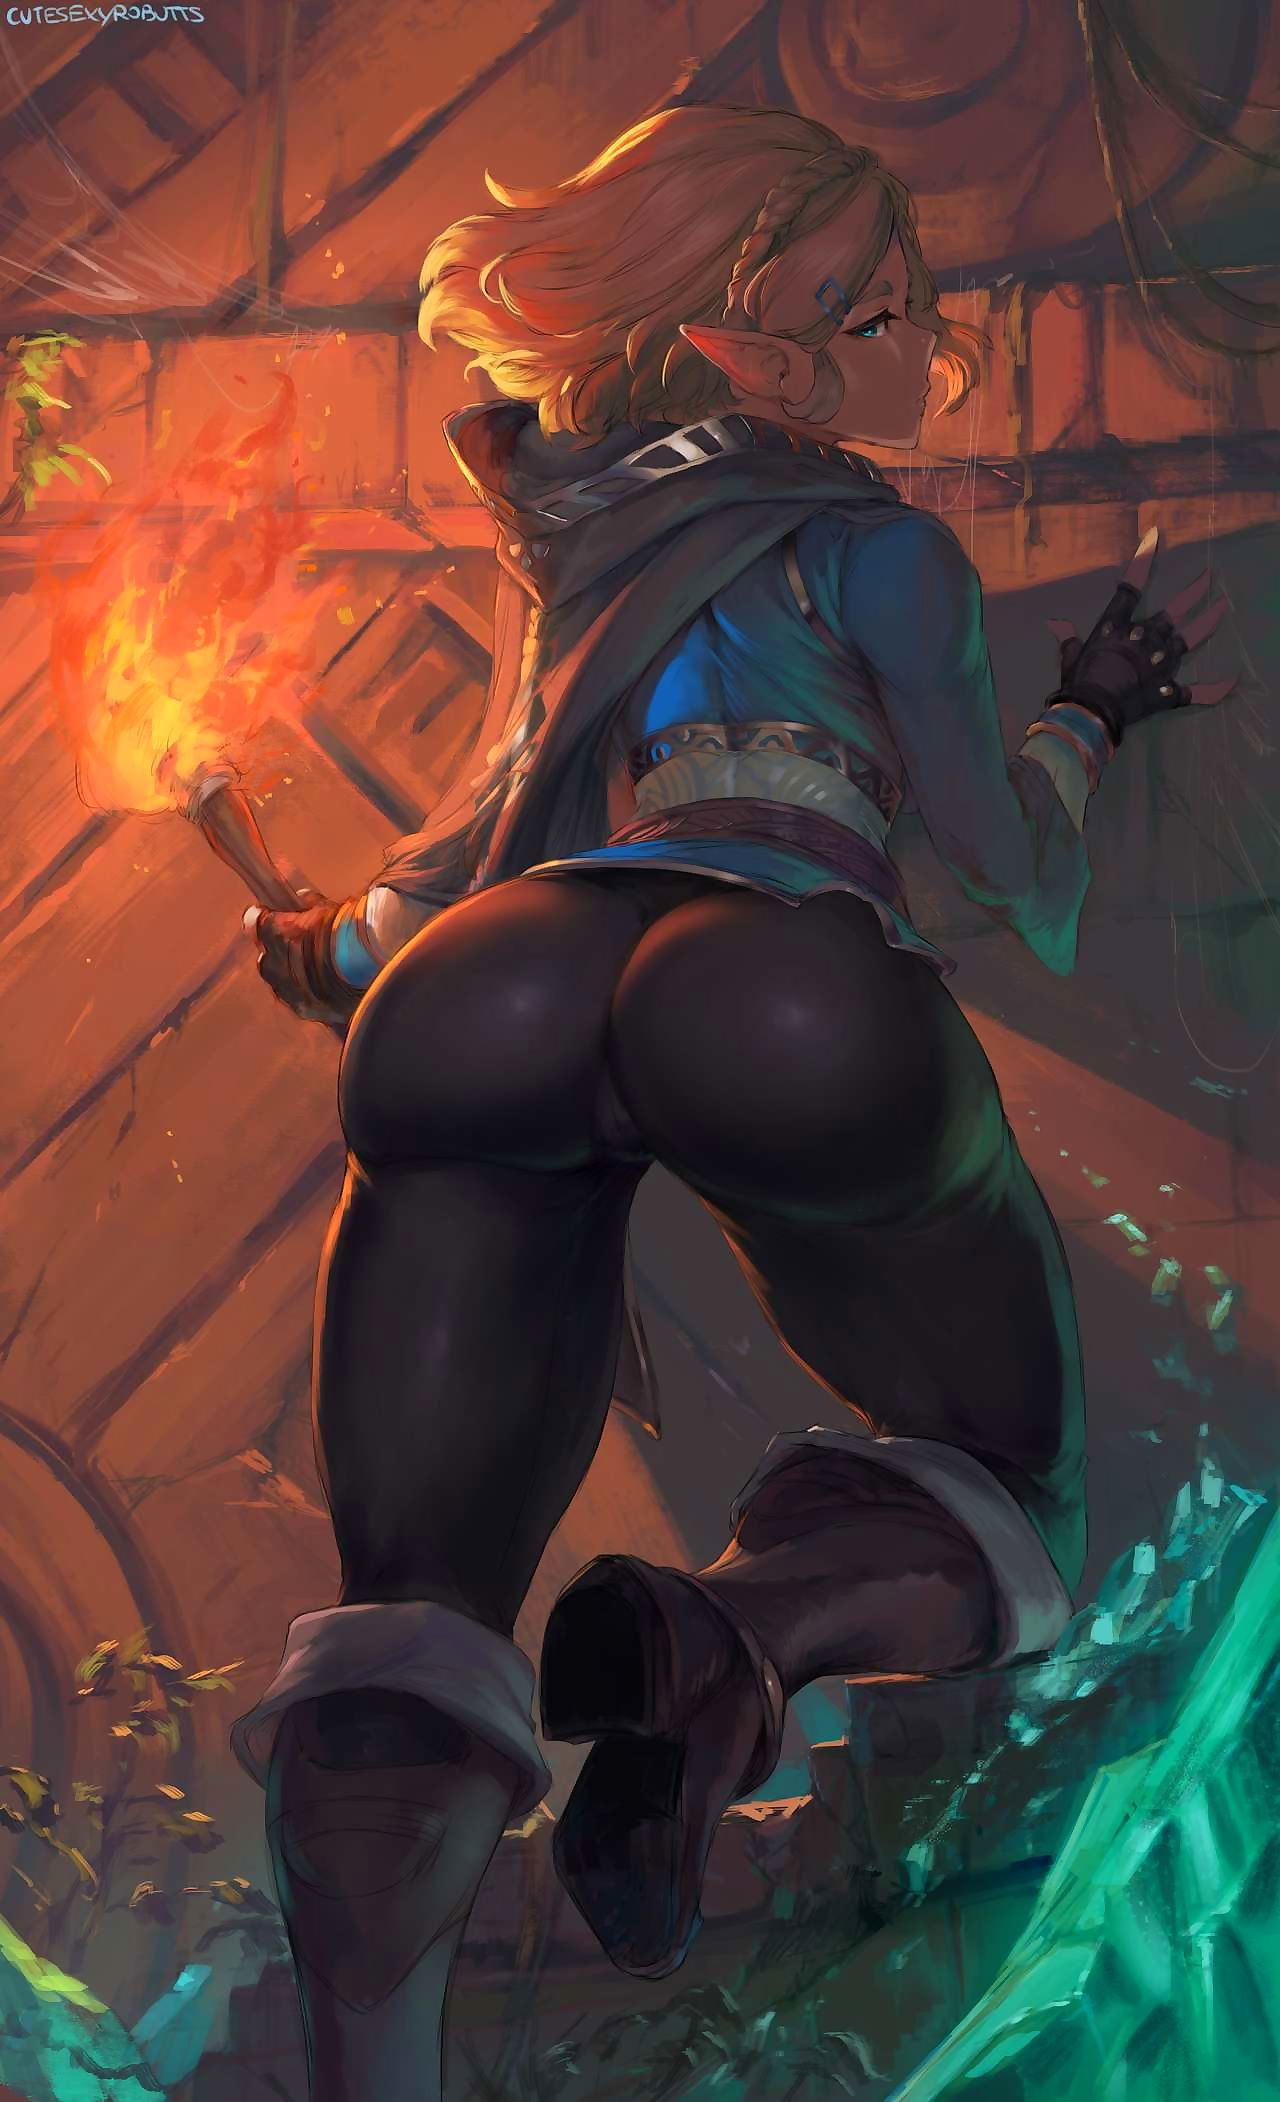 Draughtsman Galleries ::: Cutesexyrobutts